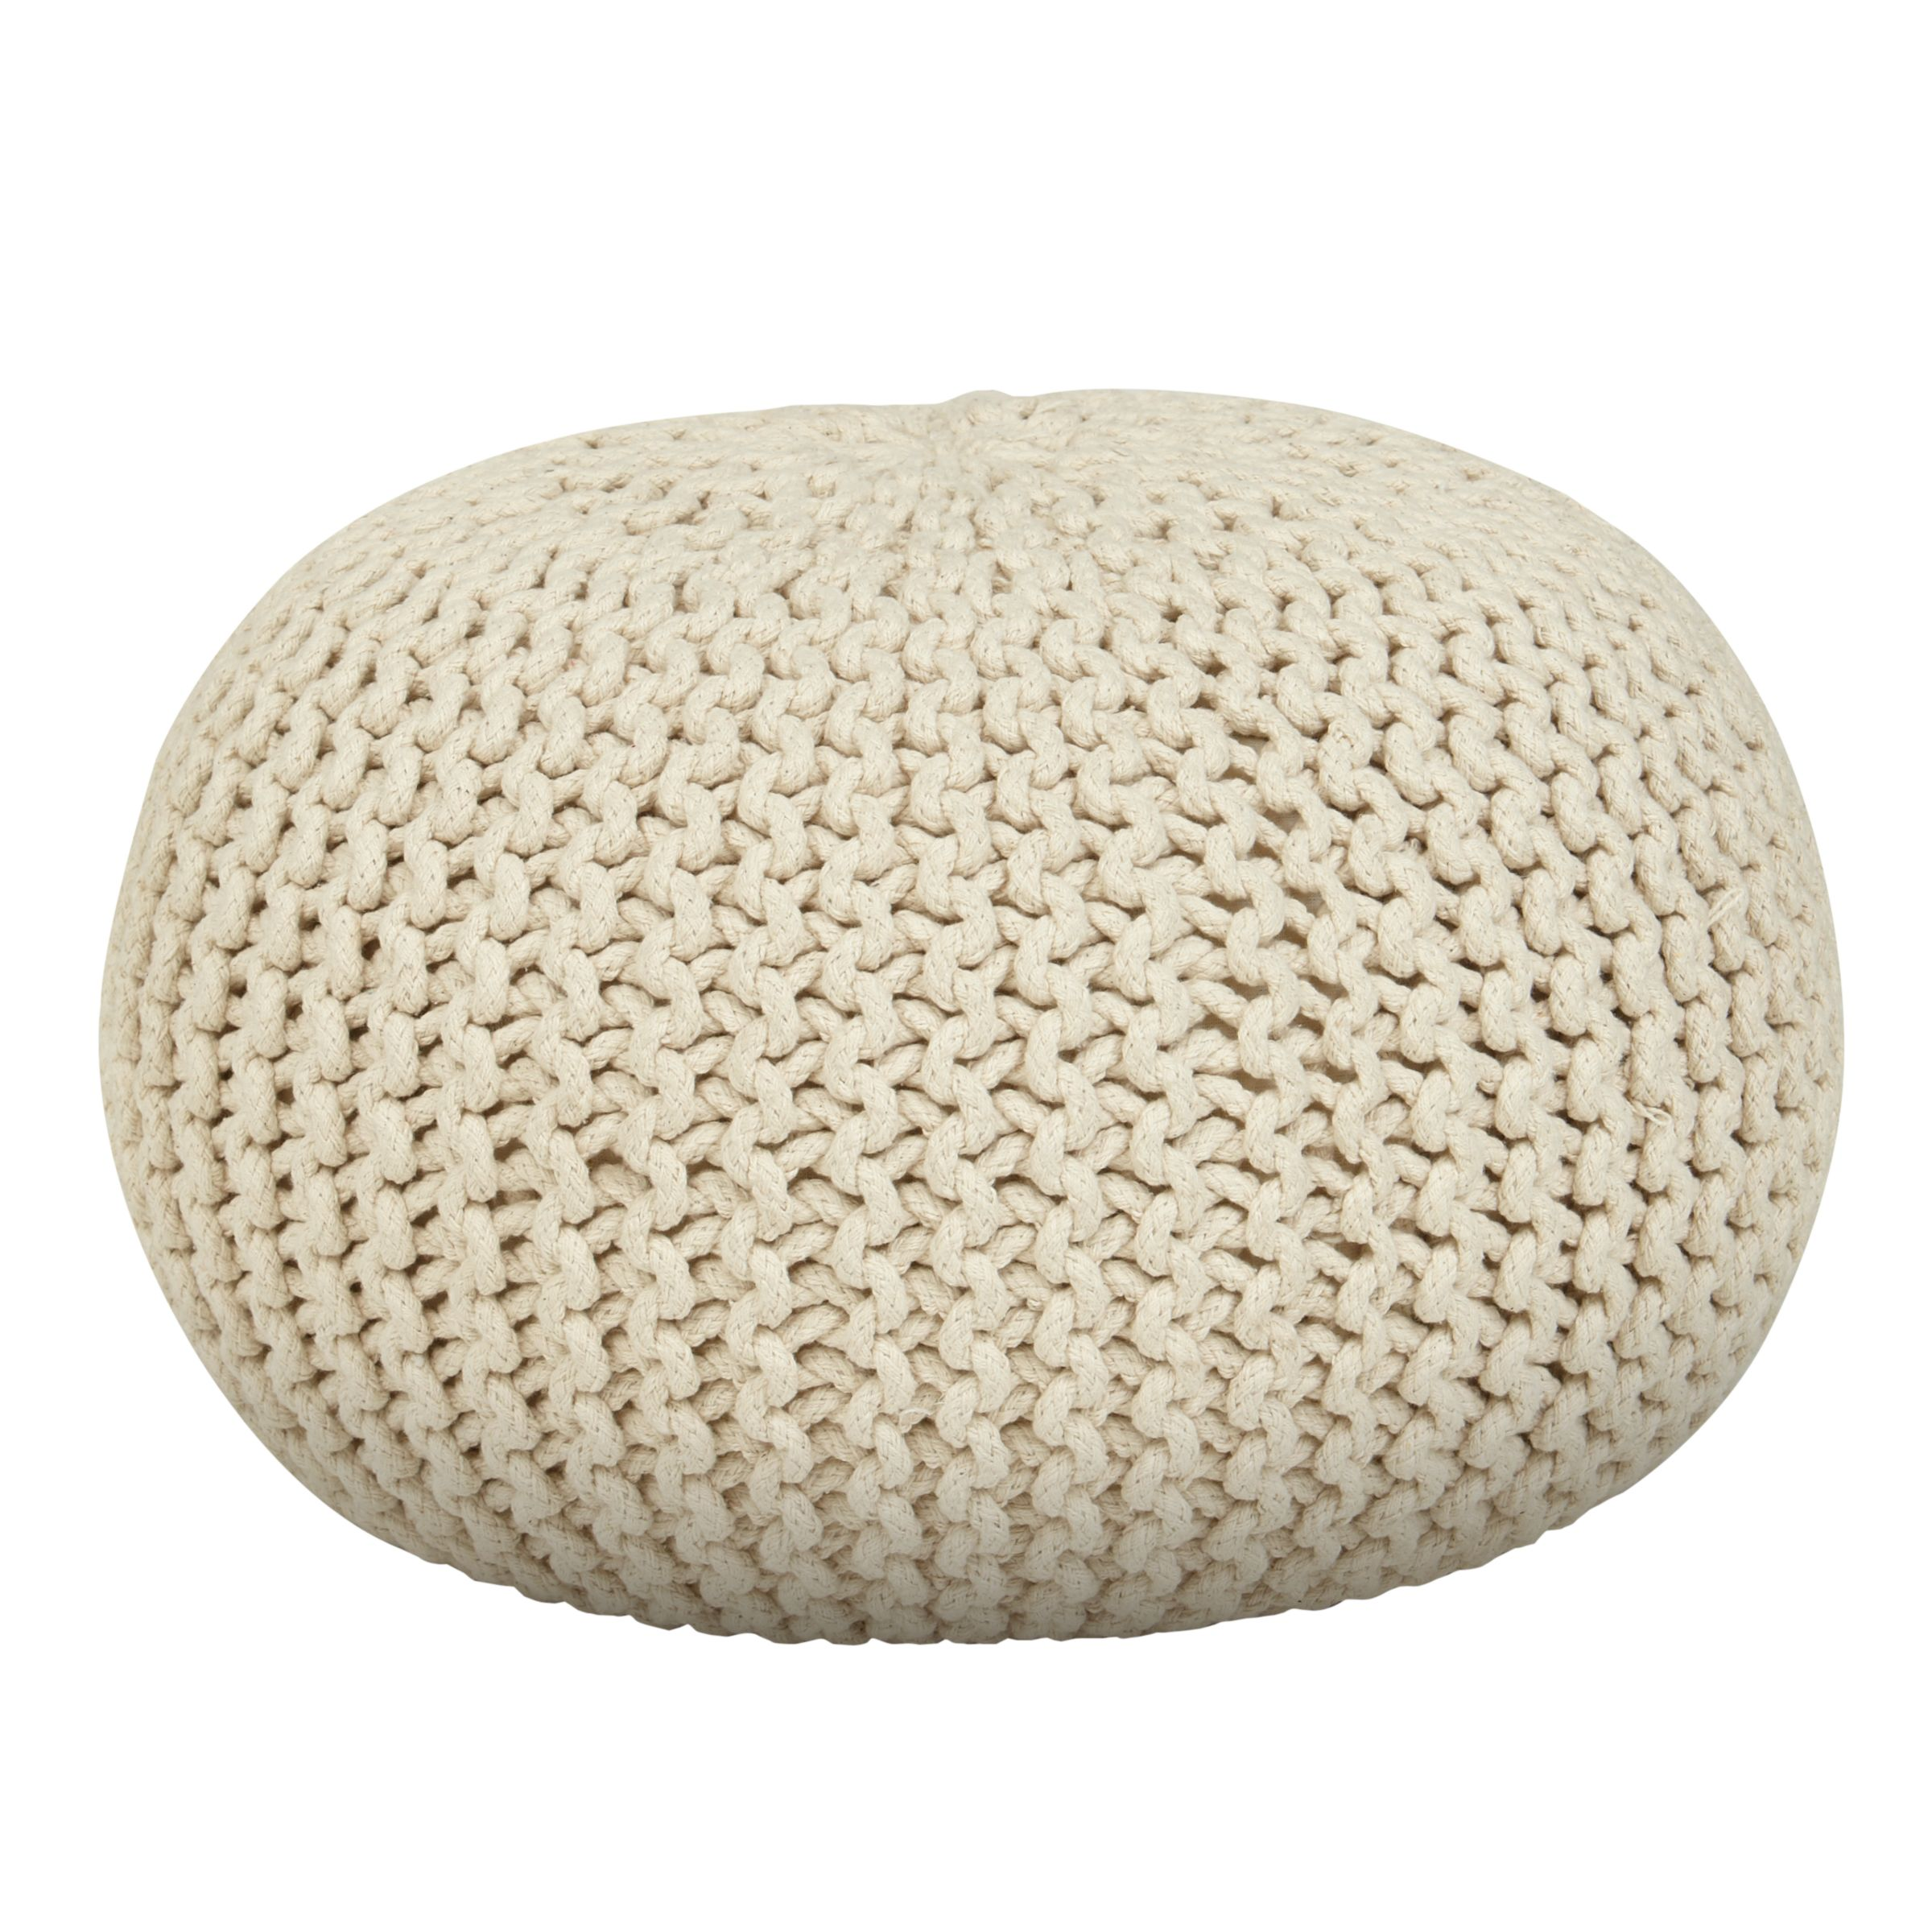 Knitting Pattern For Round Cushion Cover : Small round knitted pillow. Craft me Happy!: Small round knitted pillow.